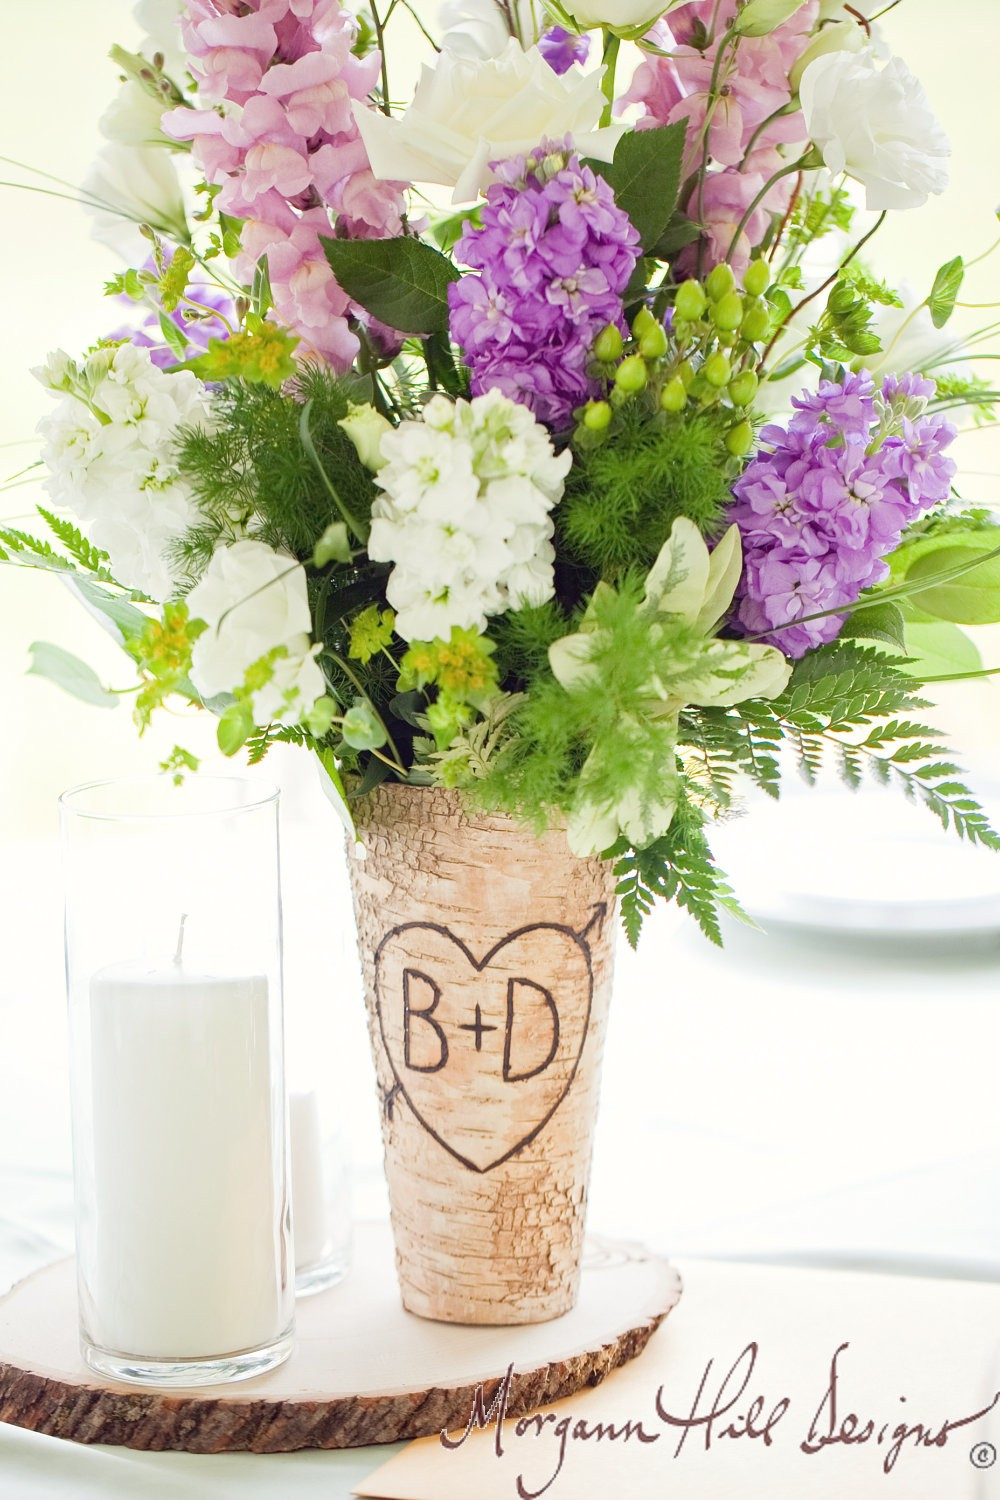 free unity ceremony personalized product set shipping gifts today rustic piece sand vase food overstock